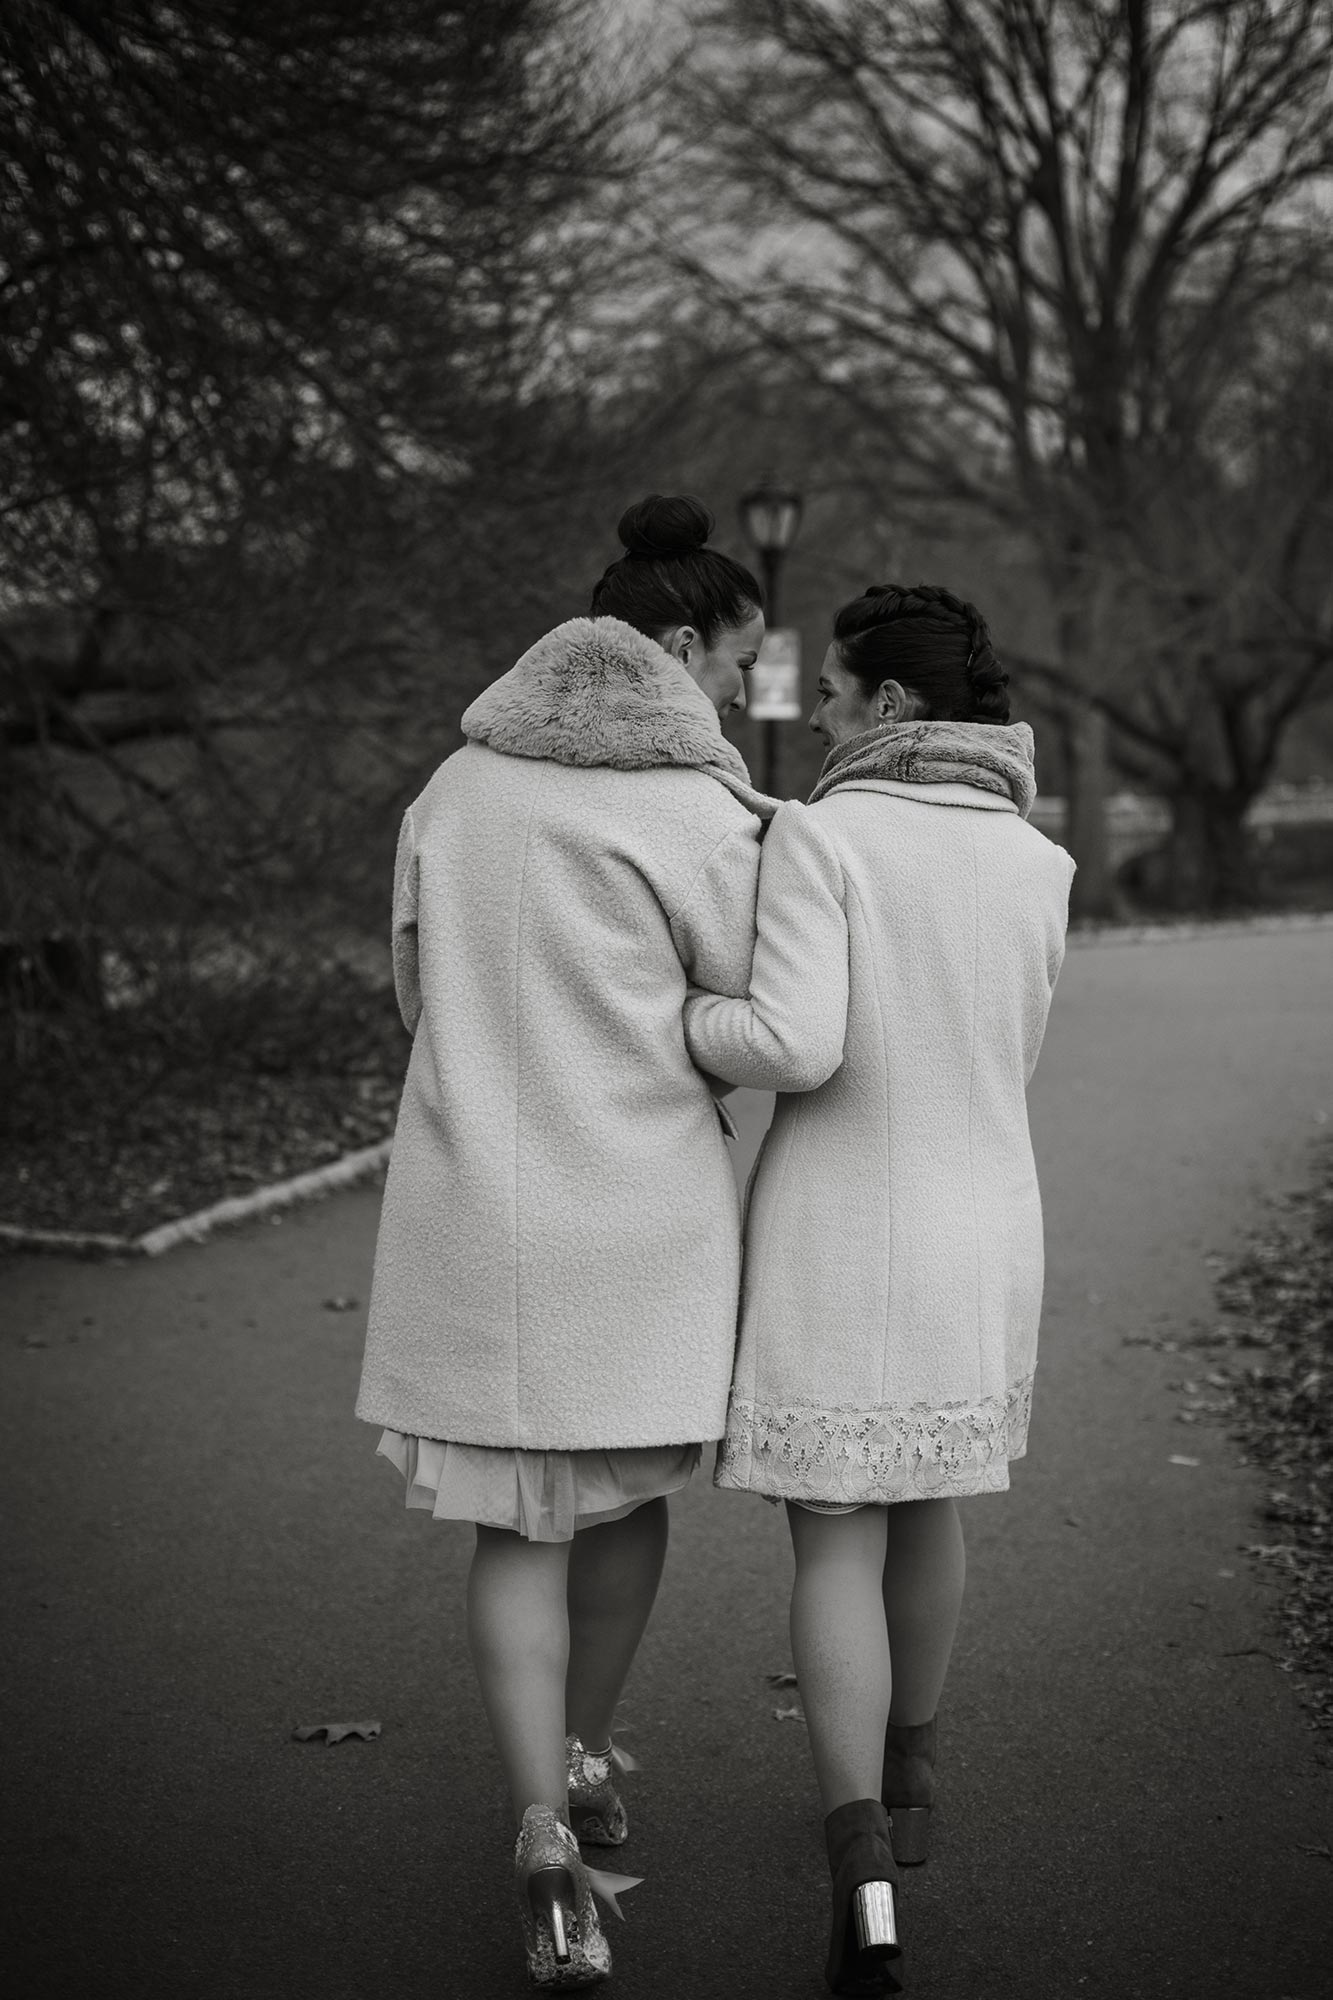 queer irish central park winter elopement kate alison photography kathryn and mary walking arm in arm down park path